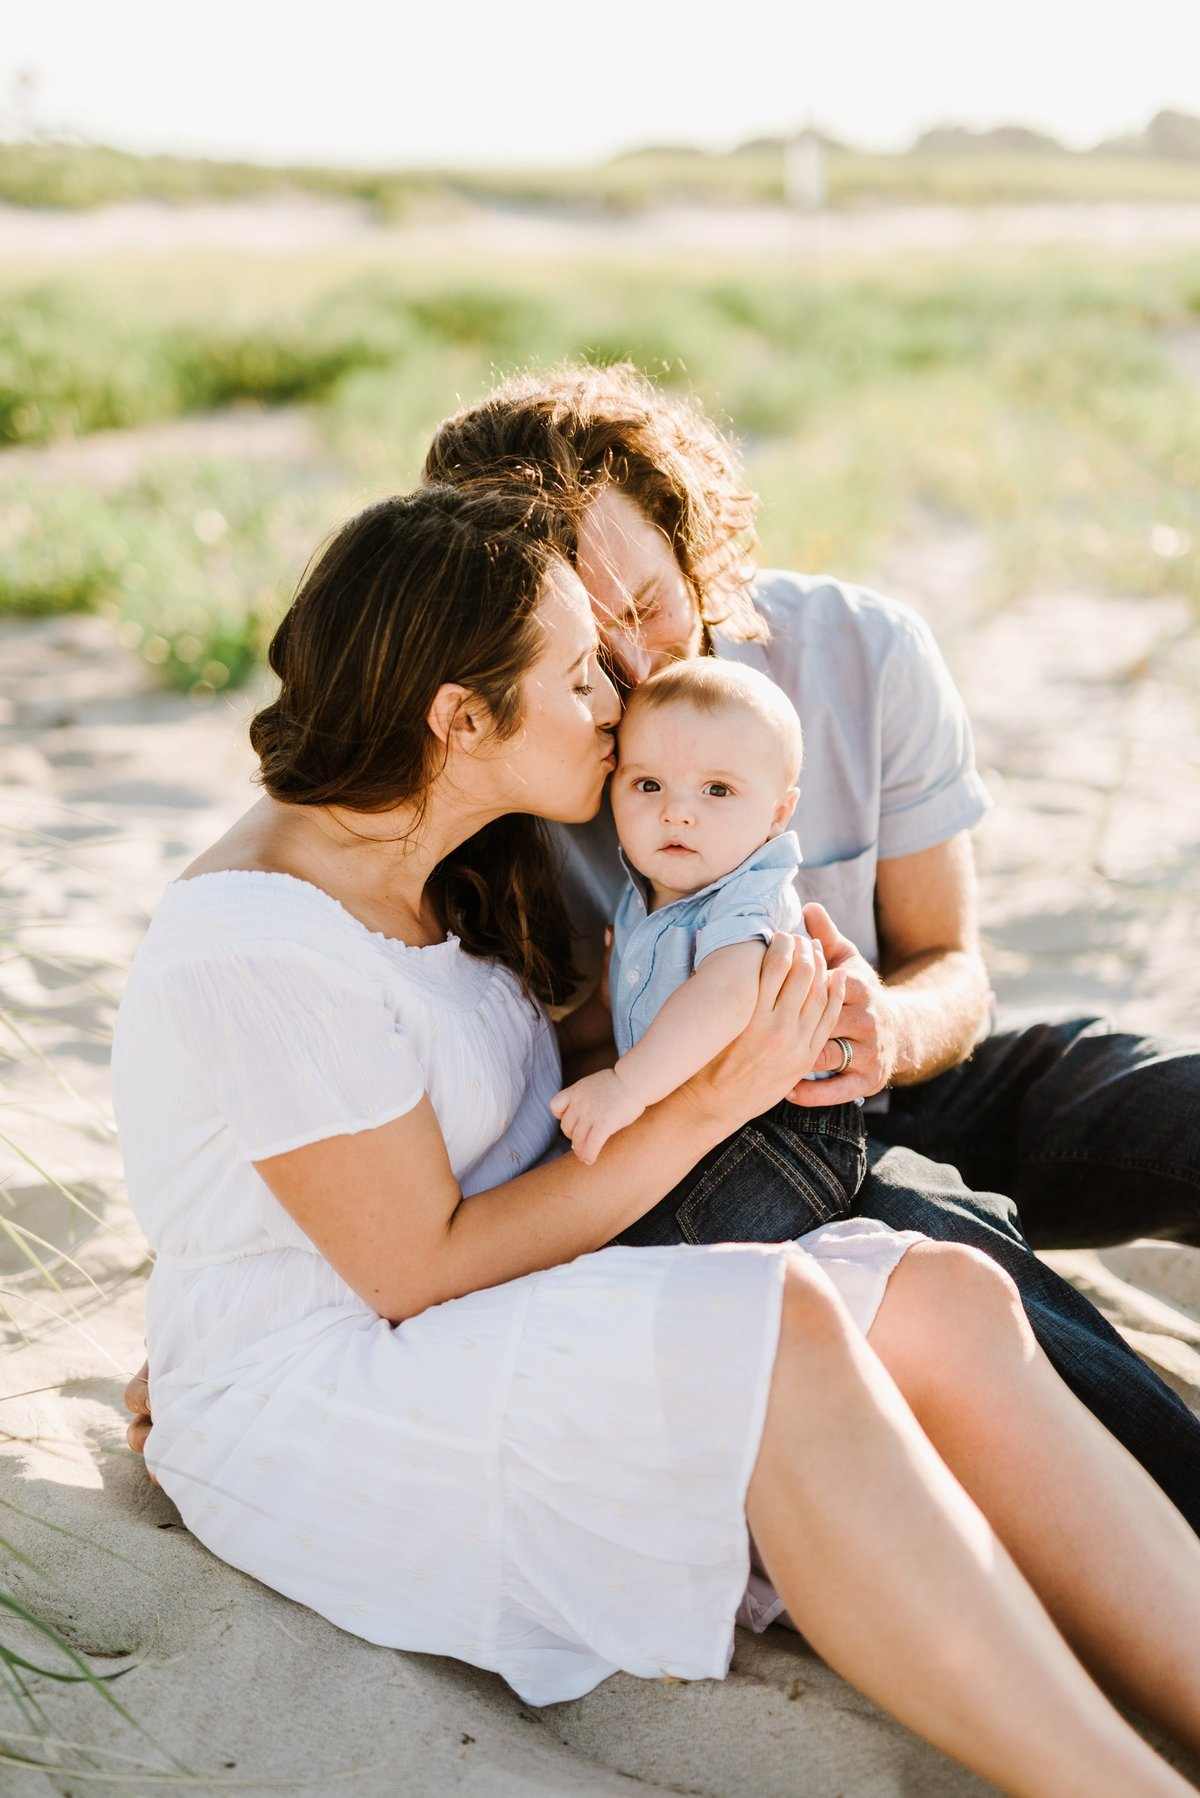 crane-beach-family-session-boston-lifestyle-newborn-photographer-photo_0010